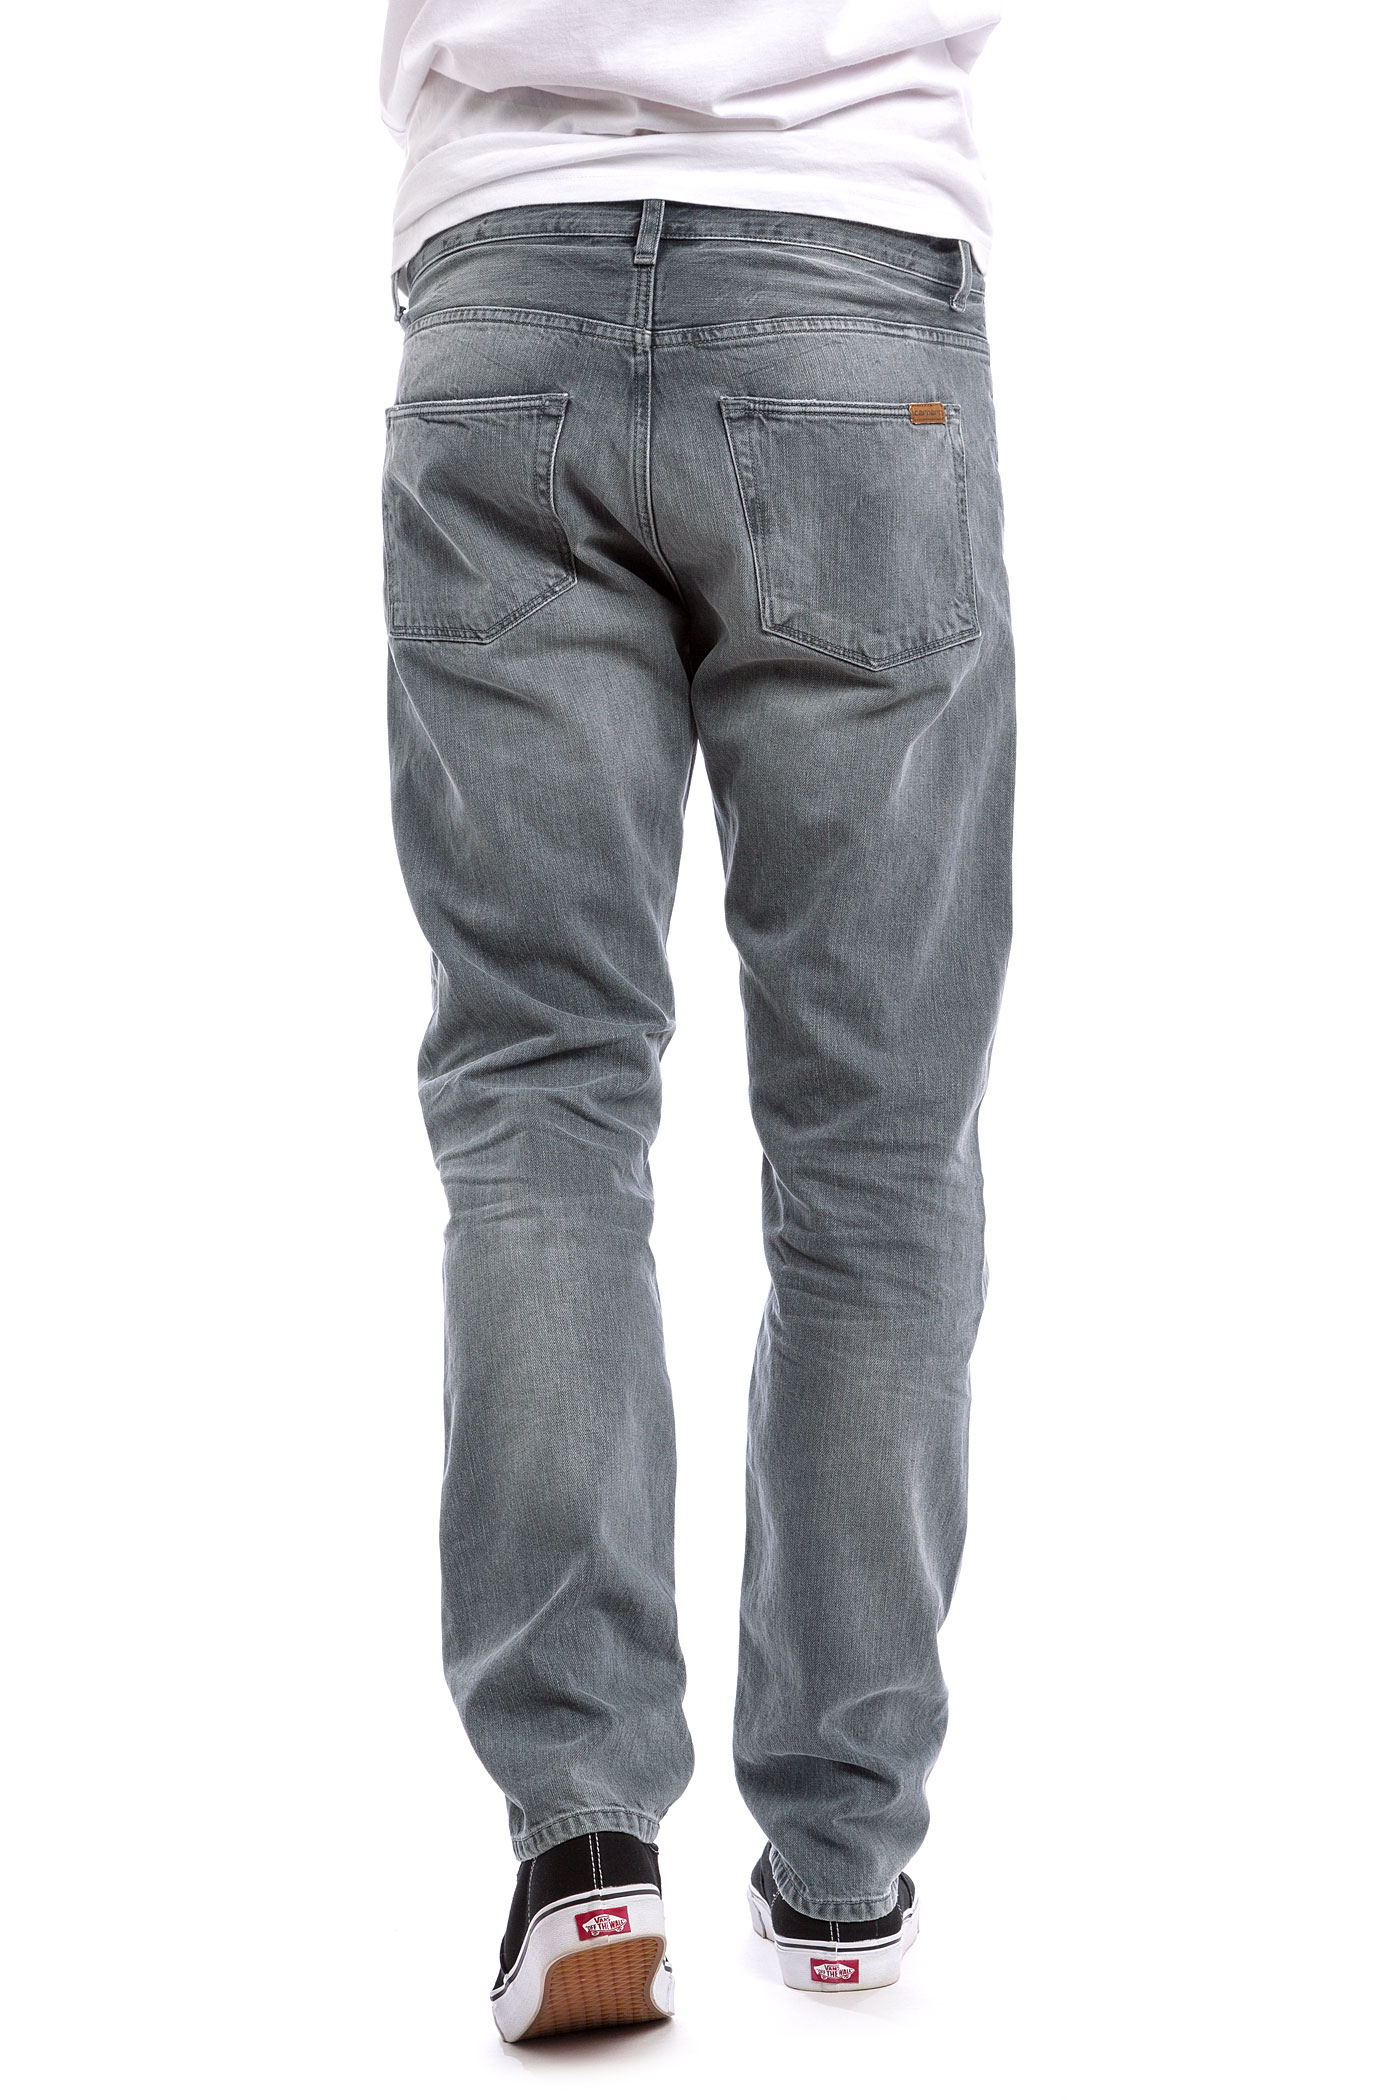 carhartt wip vicious pant grafton jeans grey gust washed. Black Bedroom Furniture Sets. Home Design Ideas